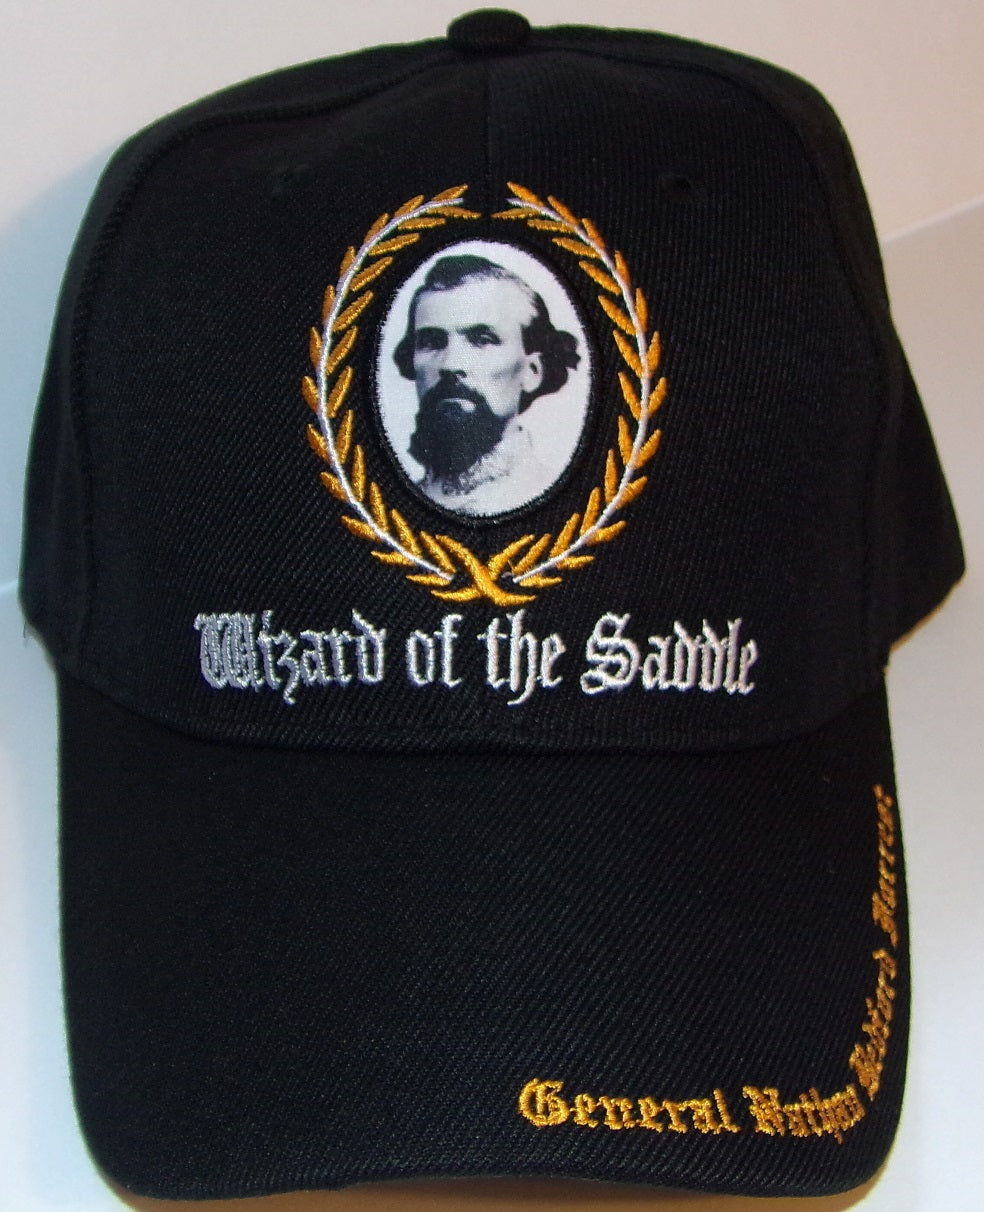 CONFEDERATE GENERAL NATHAN BEDFORD FORREST HAT - WIZARD OF THE SADDLE